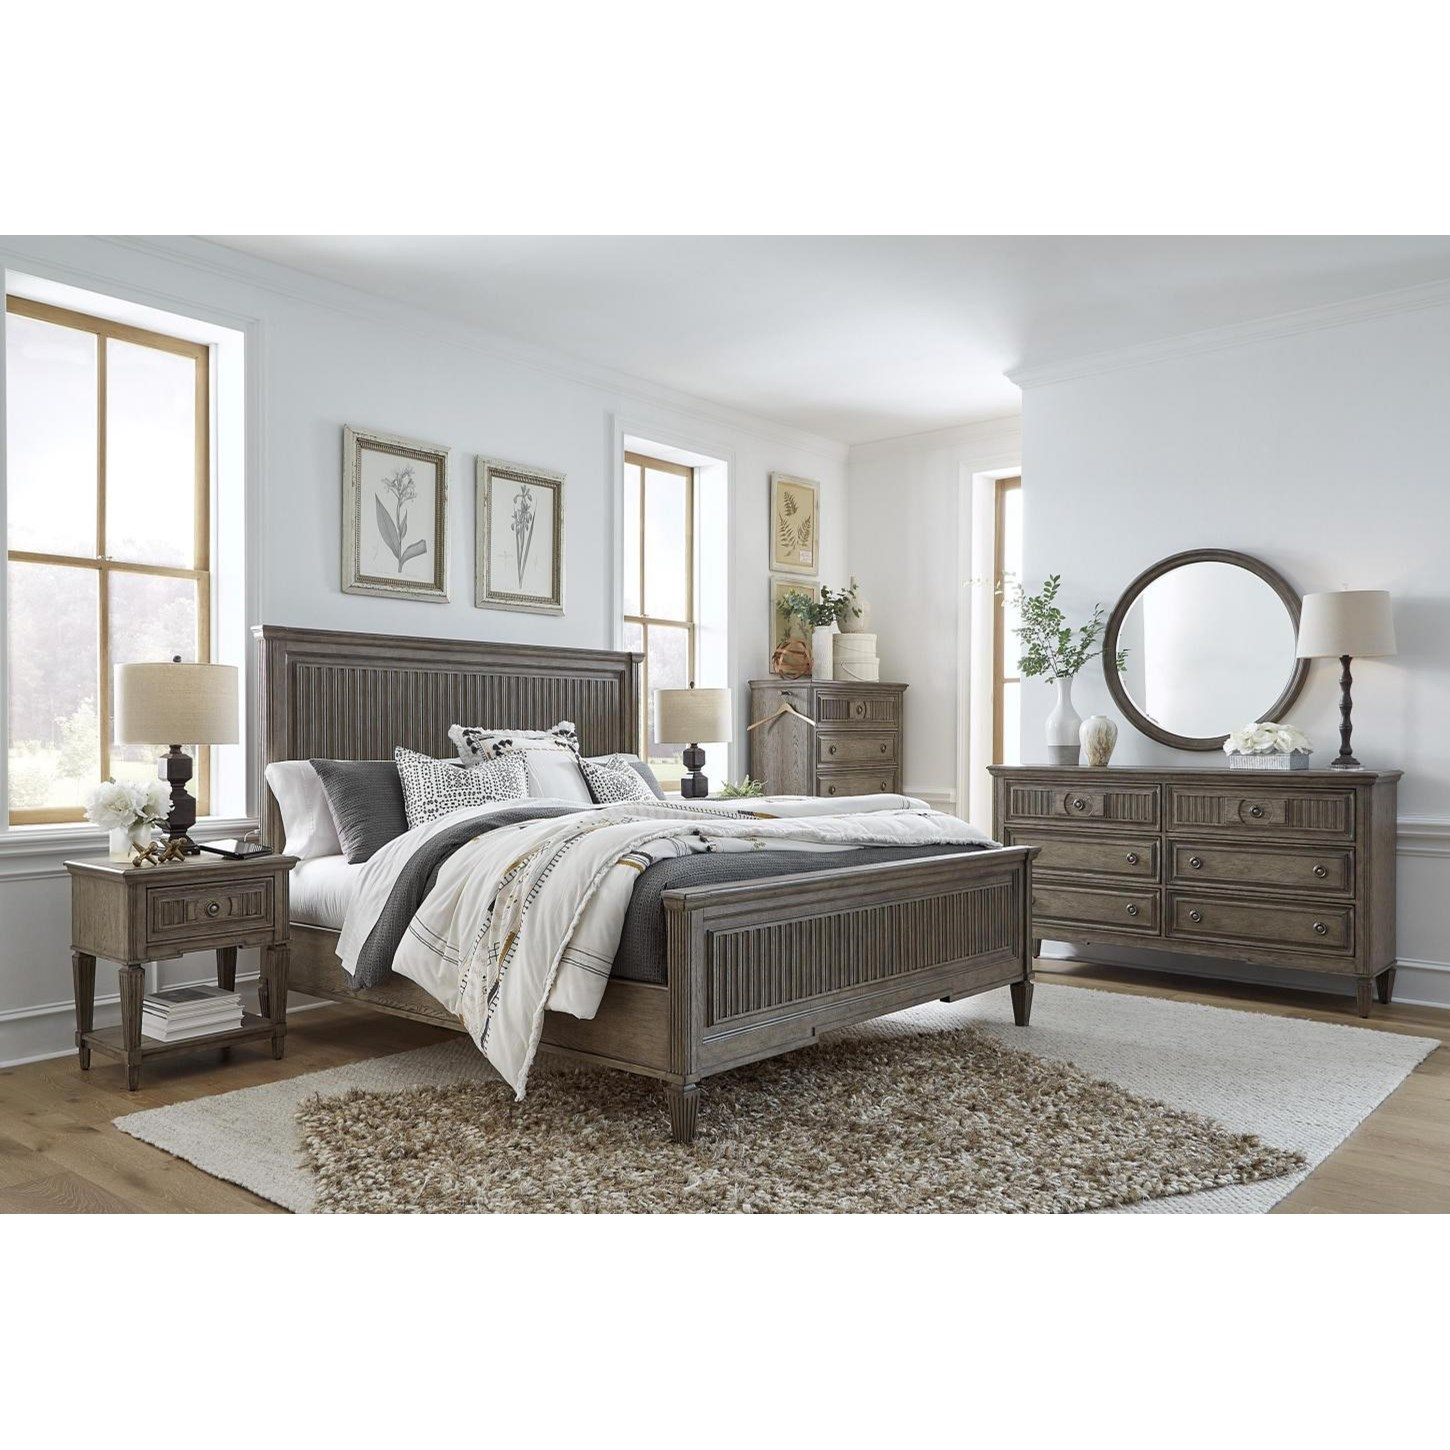 Strasbourg Queen Bedroom Group by Aspenhome at Bullard Furniture